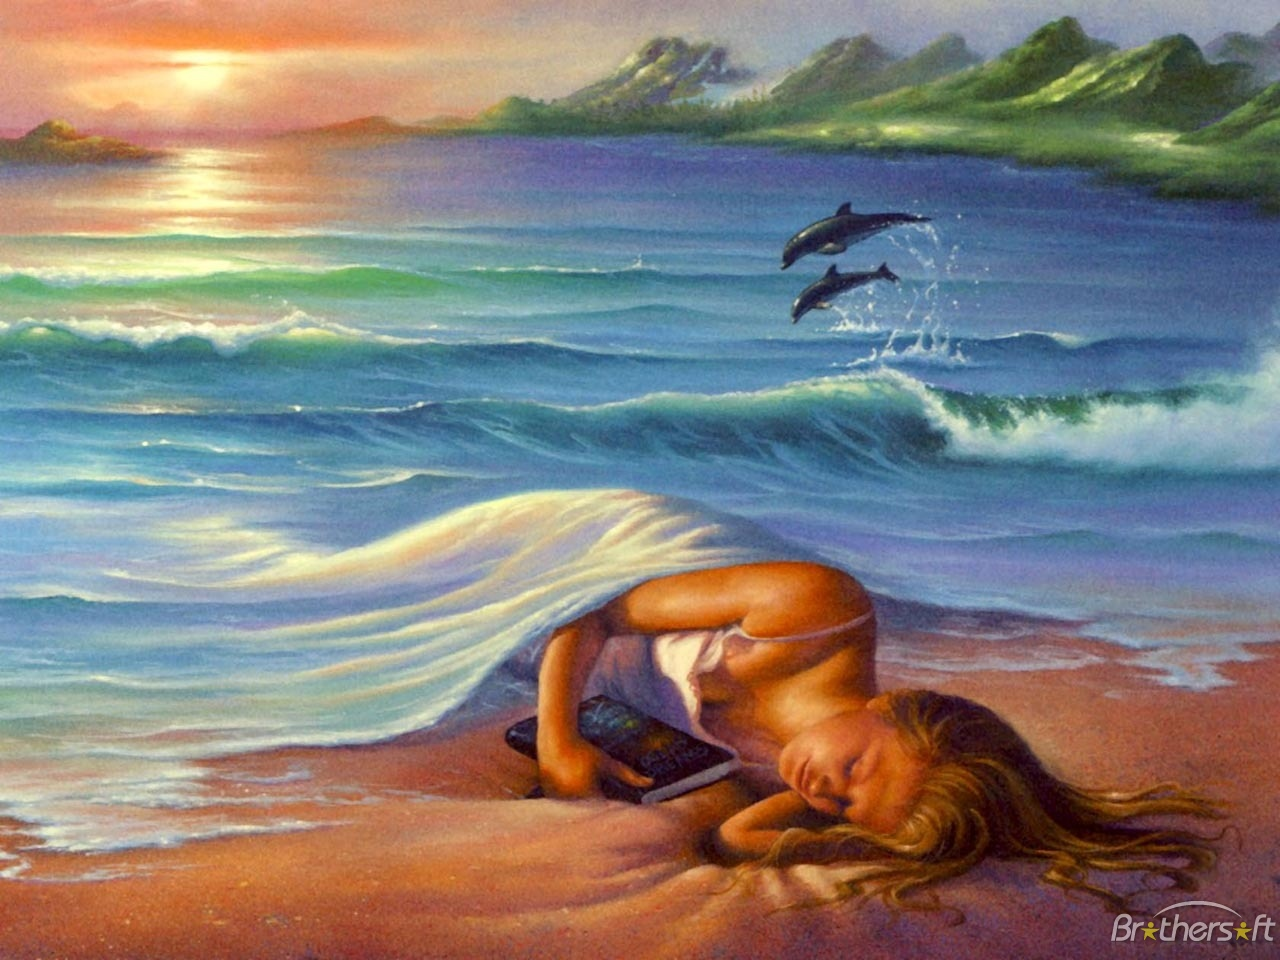 Emotions Run Deep In Ocean Dreams: http://yourdreaminterpretations.com/2014/03/15/emotions-run-deep-oceans-dreams/